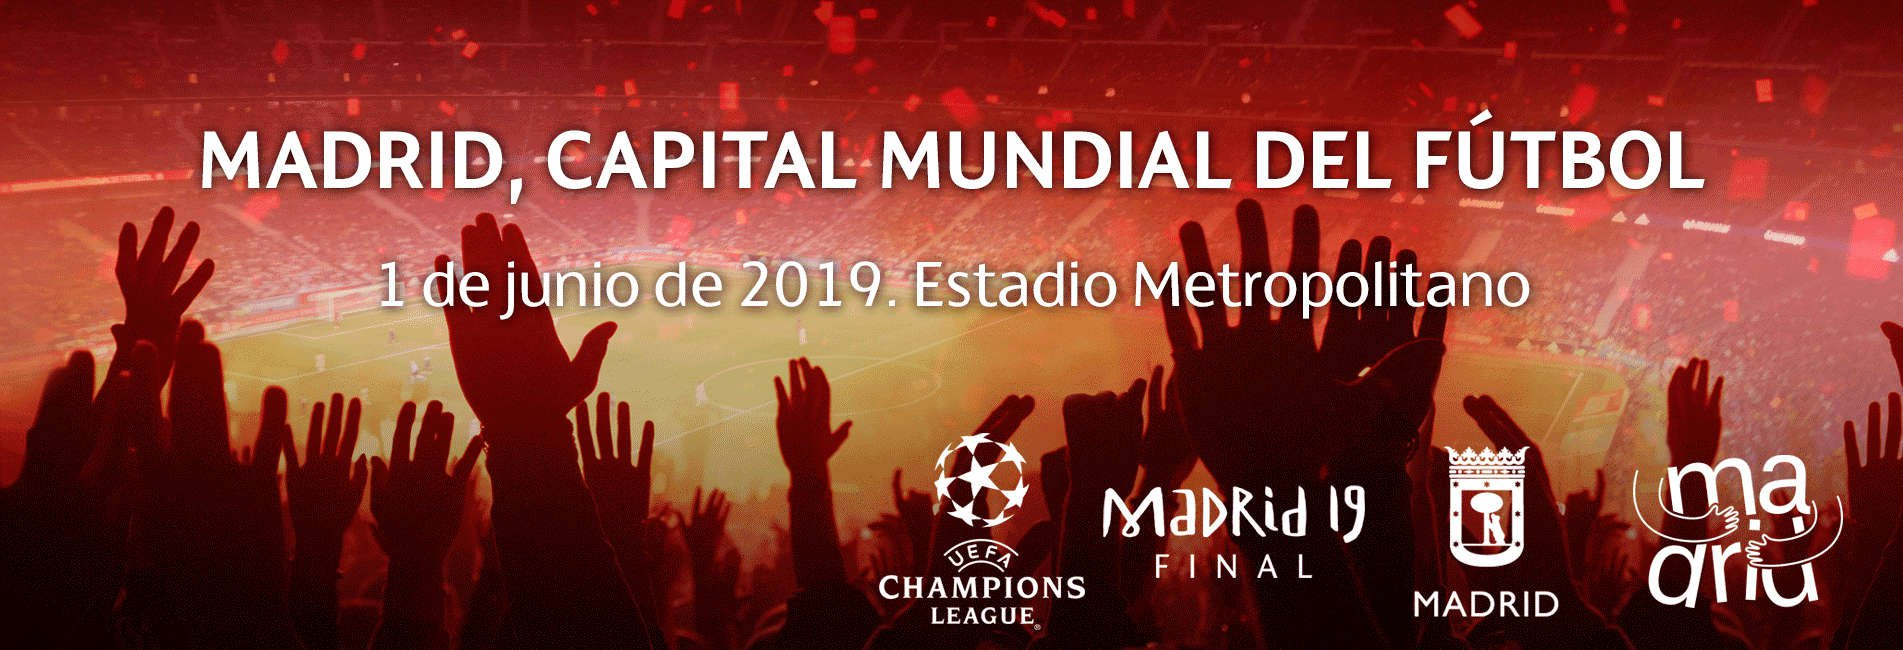 Final de la Champions League. 1 junio. Estadio Metropolitano. Madrid